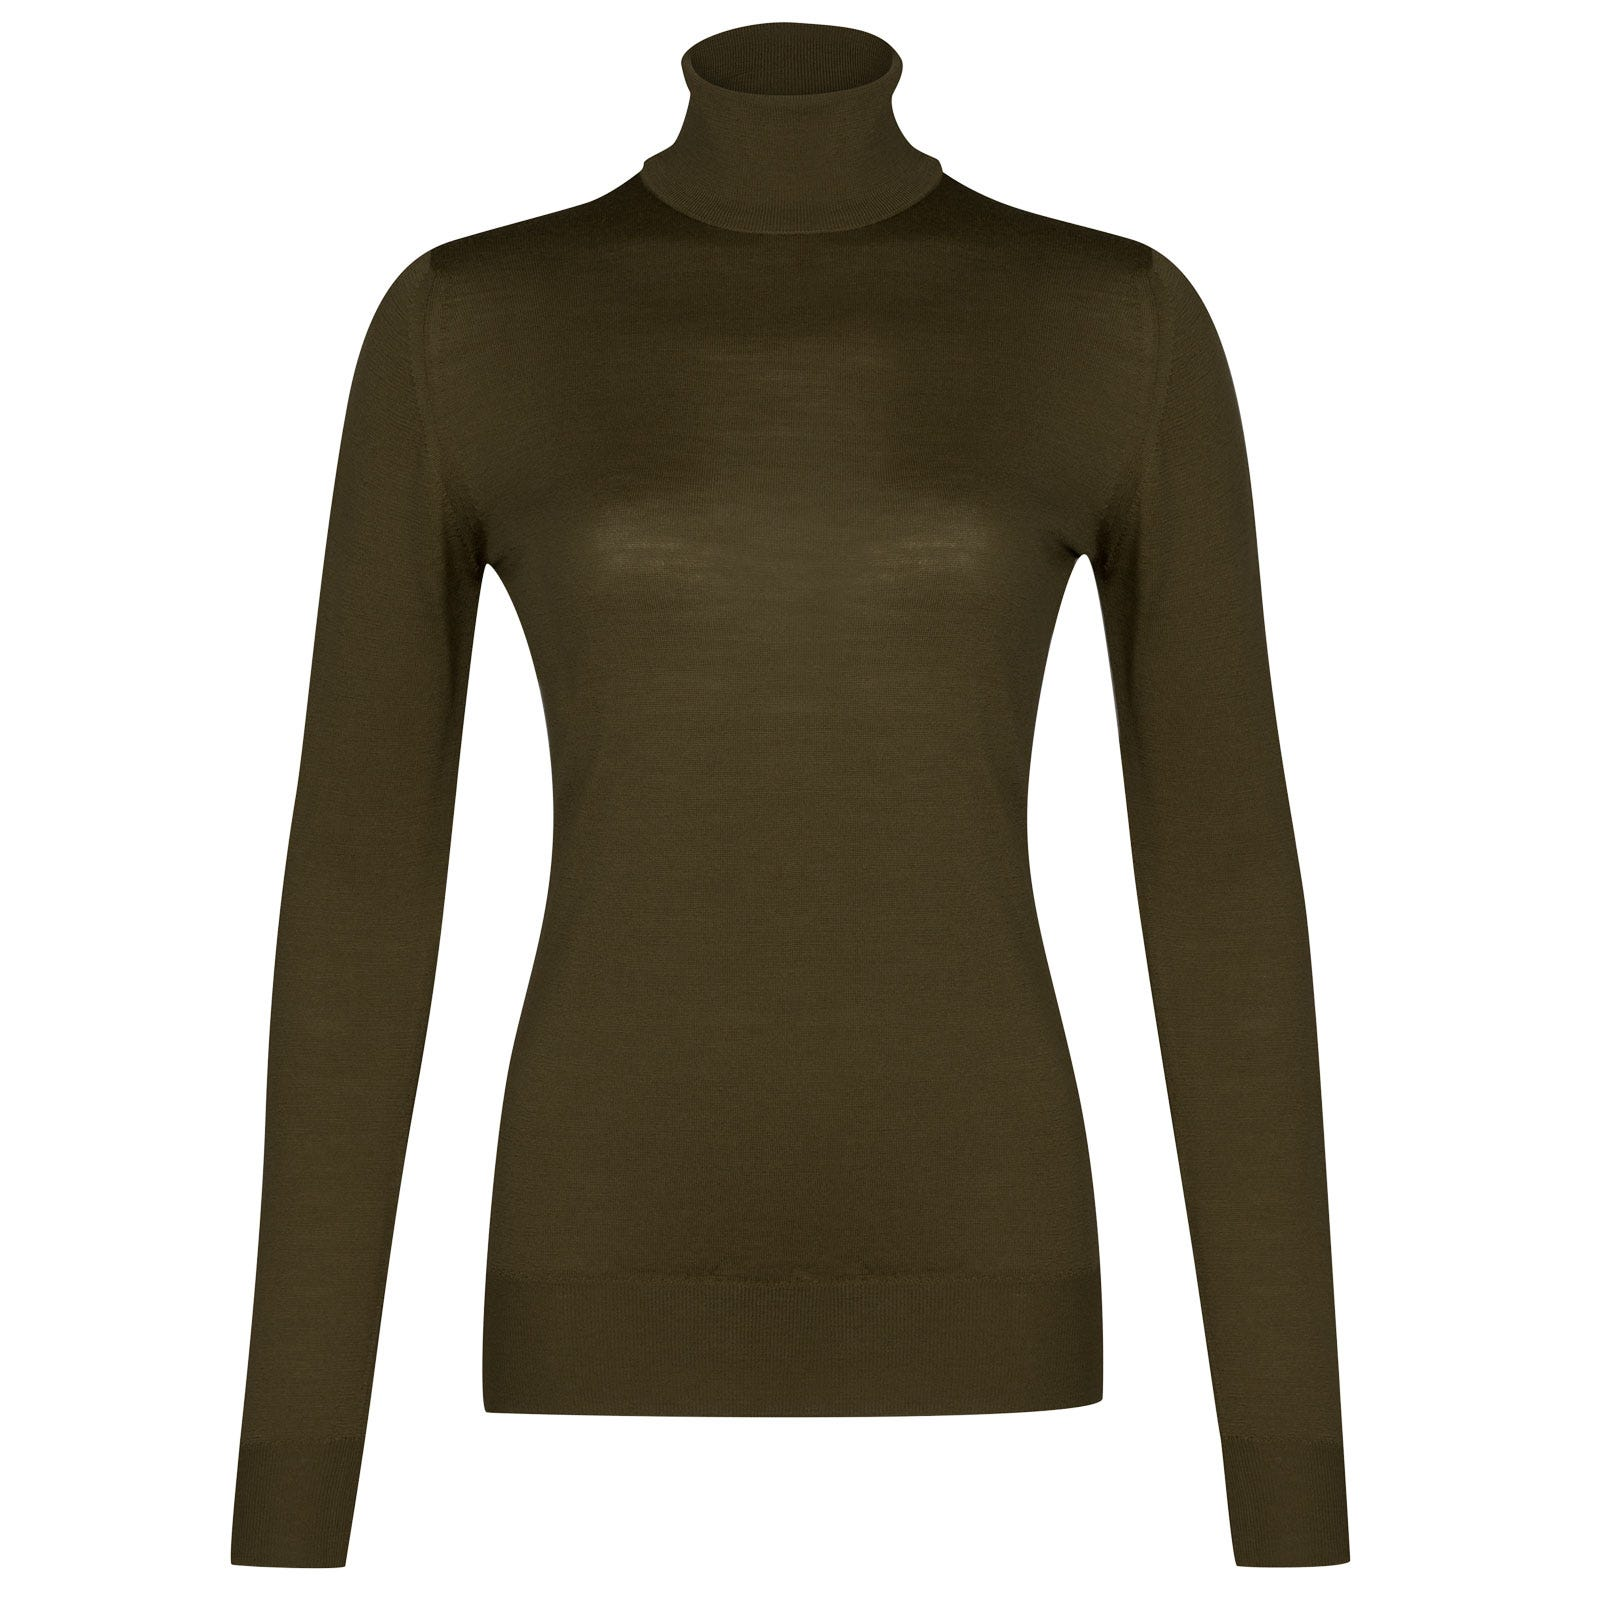 John Smedley Catkin Merino Wool Sweater in Kielder Green-S